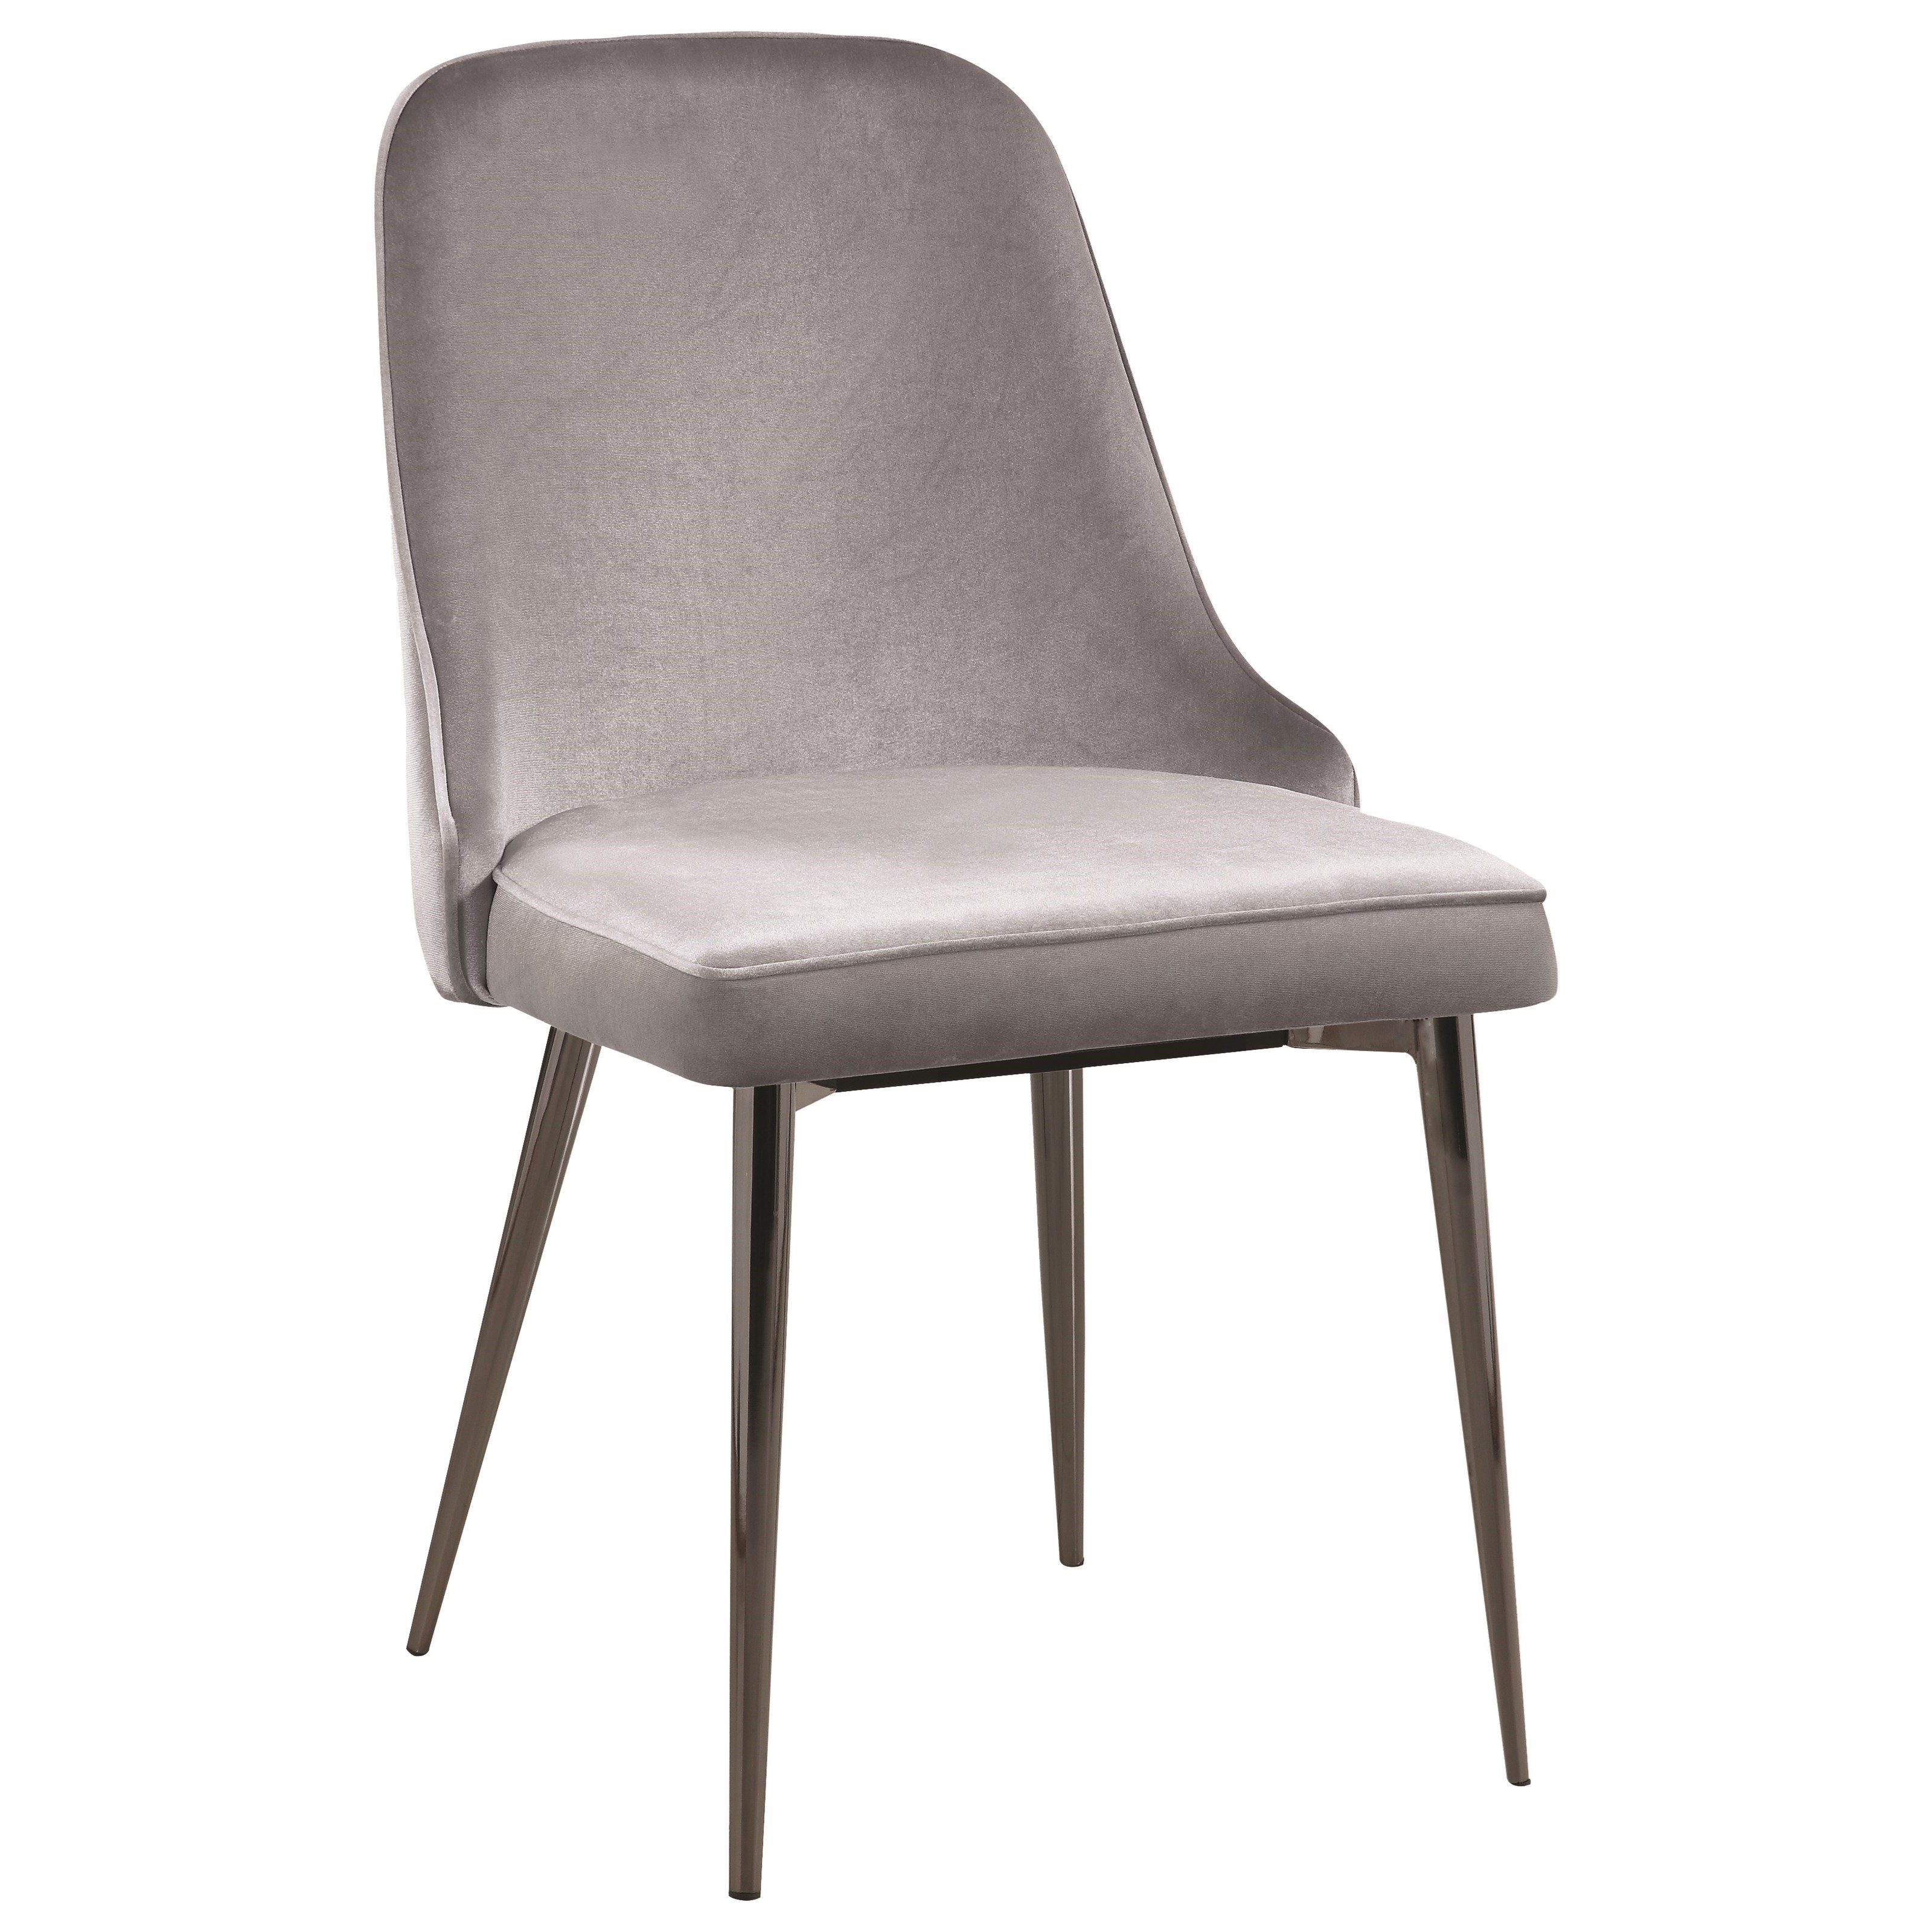 Scott Living 10795 Dining Chair - Item Number: 107953